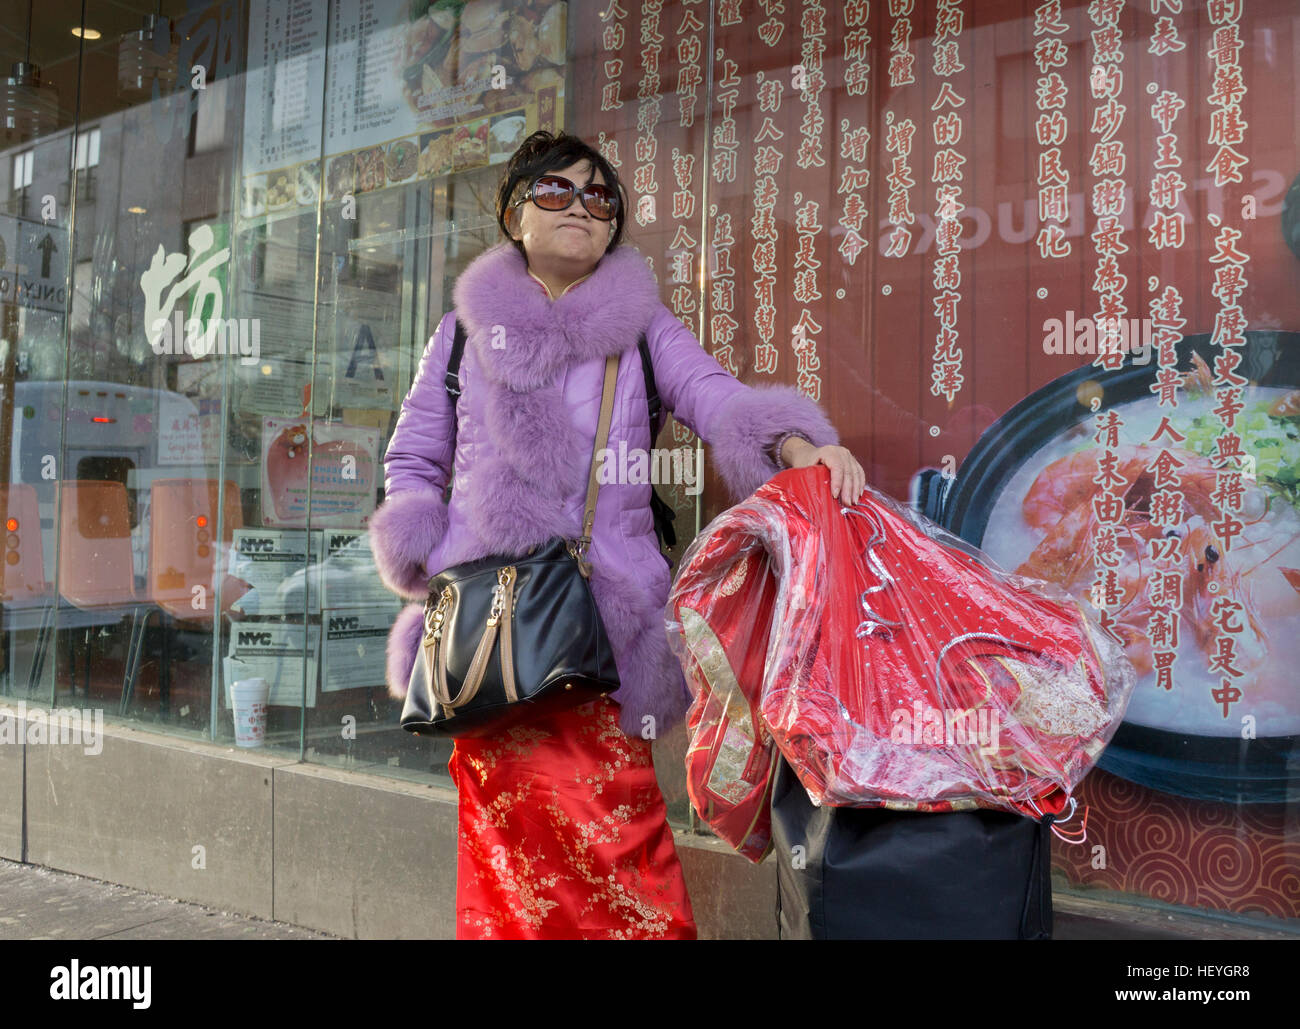 A Chinese American Woman Wearing Traditional Wedding Dress Carrying Another In Chinatown Downtown Flushing Queens New York